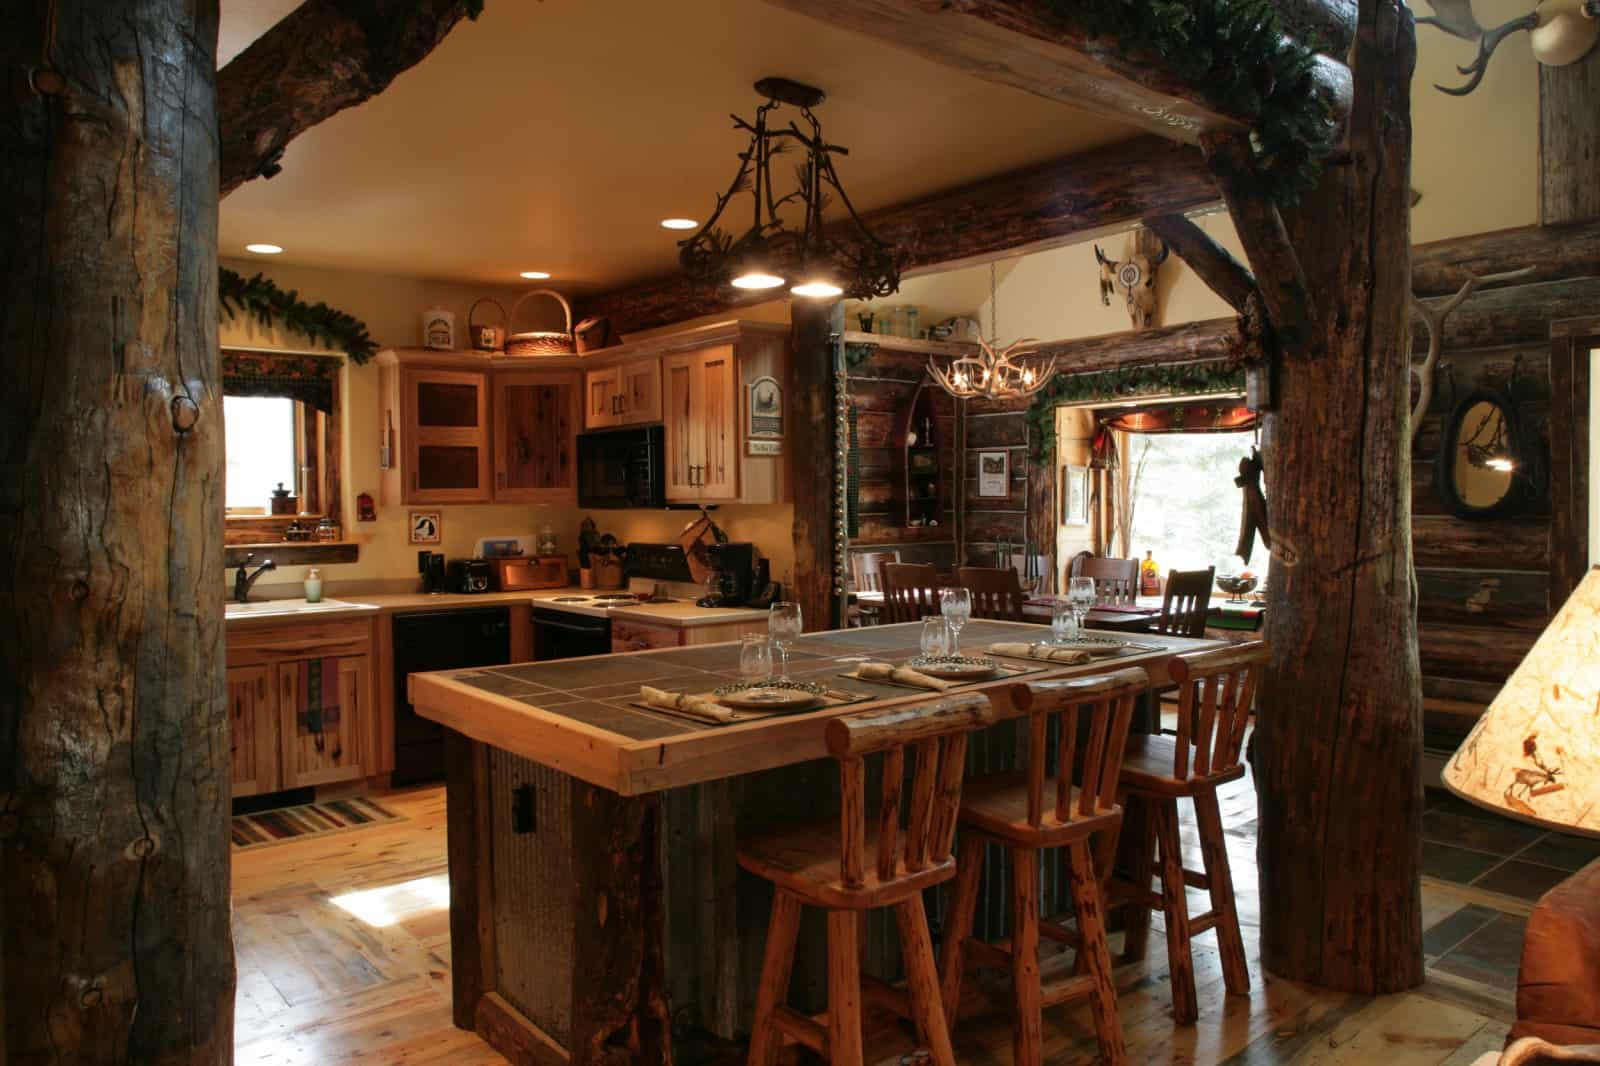 Interior design trends 2017 rustic kitchen decor house interior - Log cabin interior design ideas ...